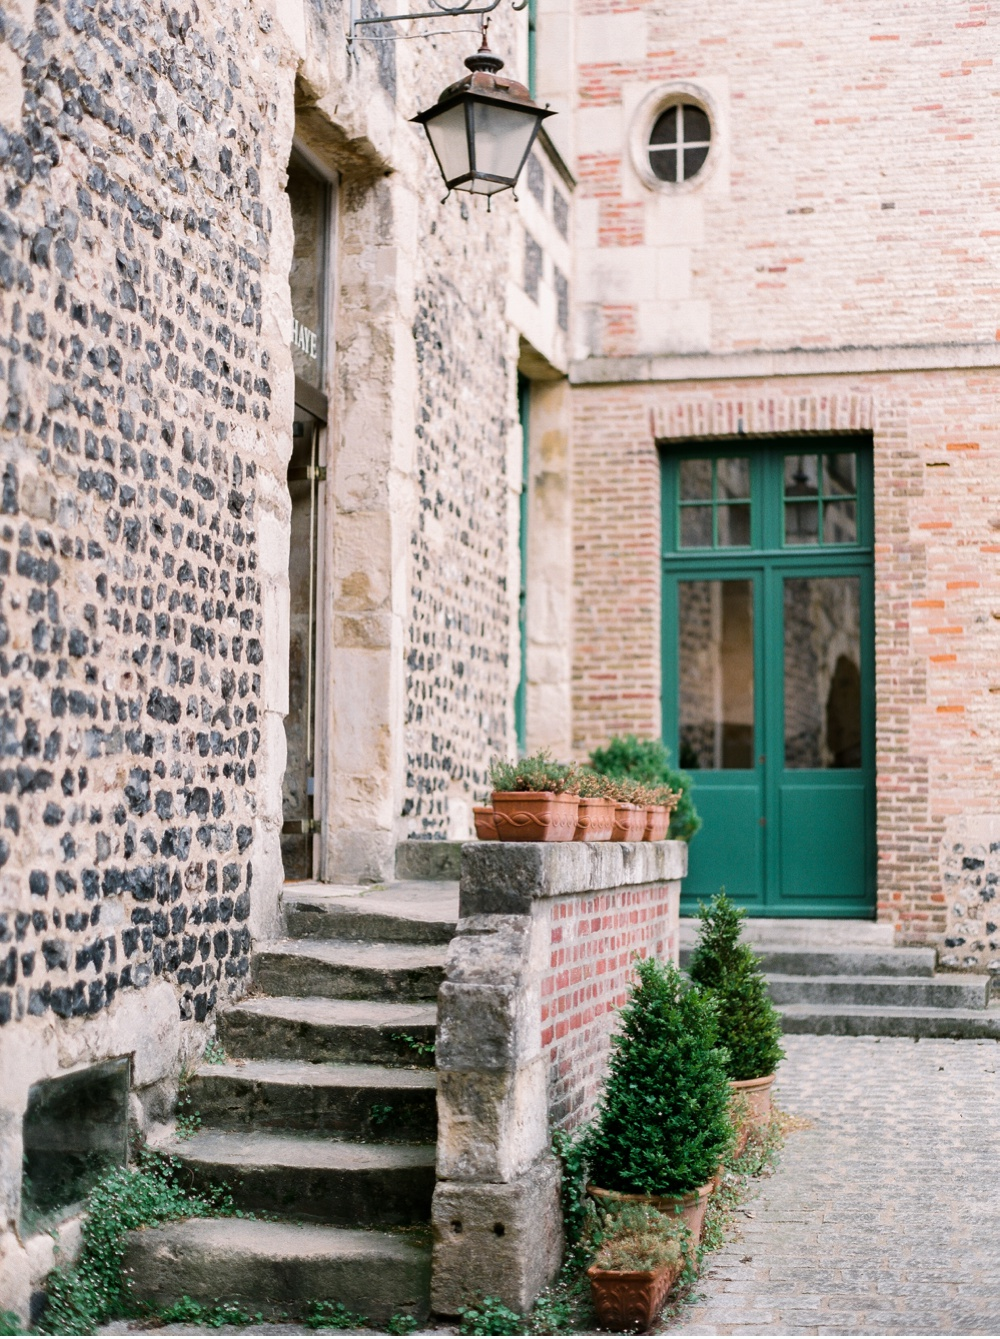 Destination_Wedding_Photographer_France©MadalinaSheldon_0063.jpg